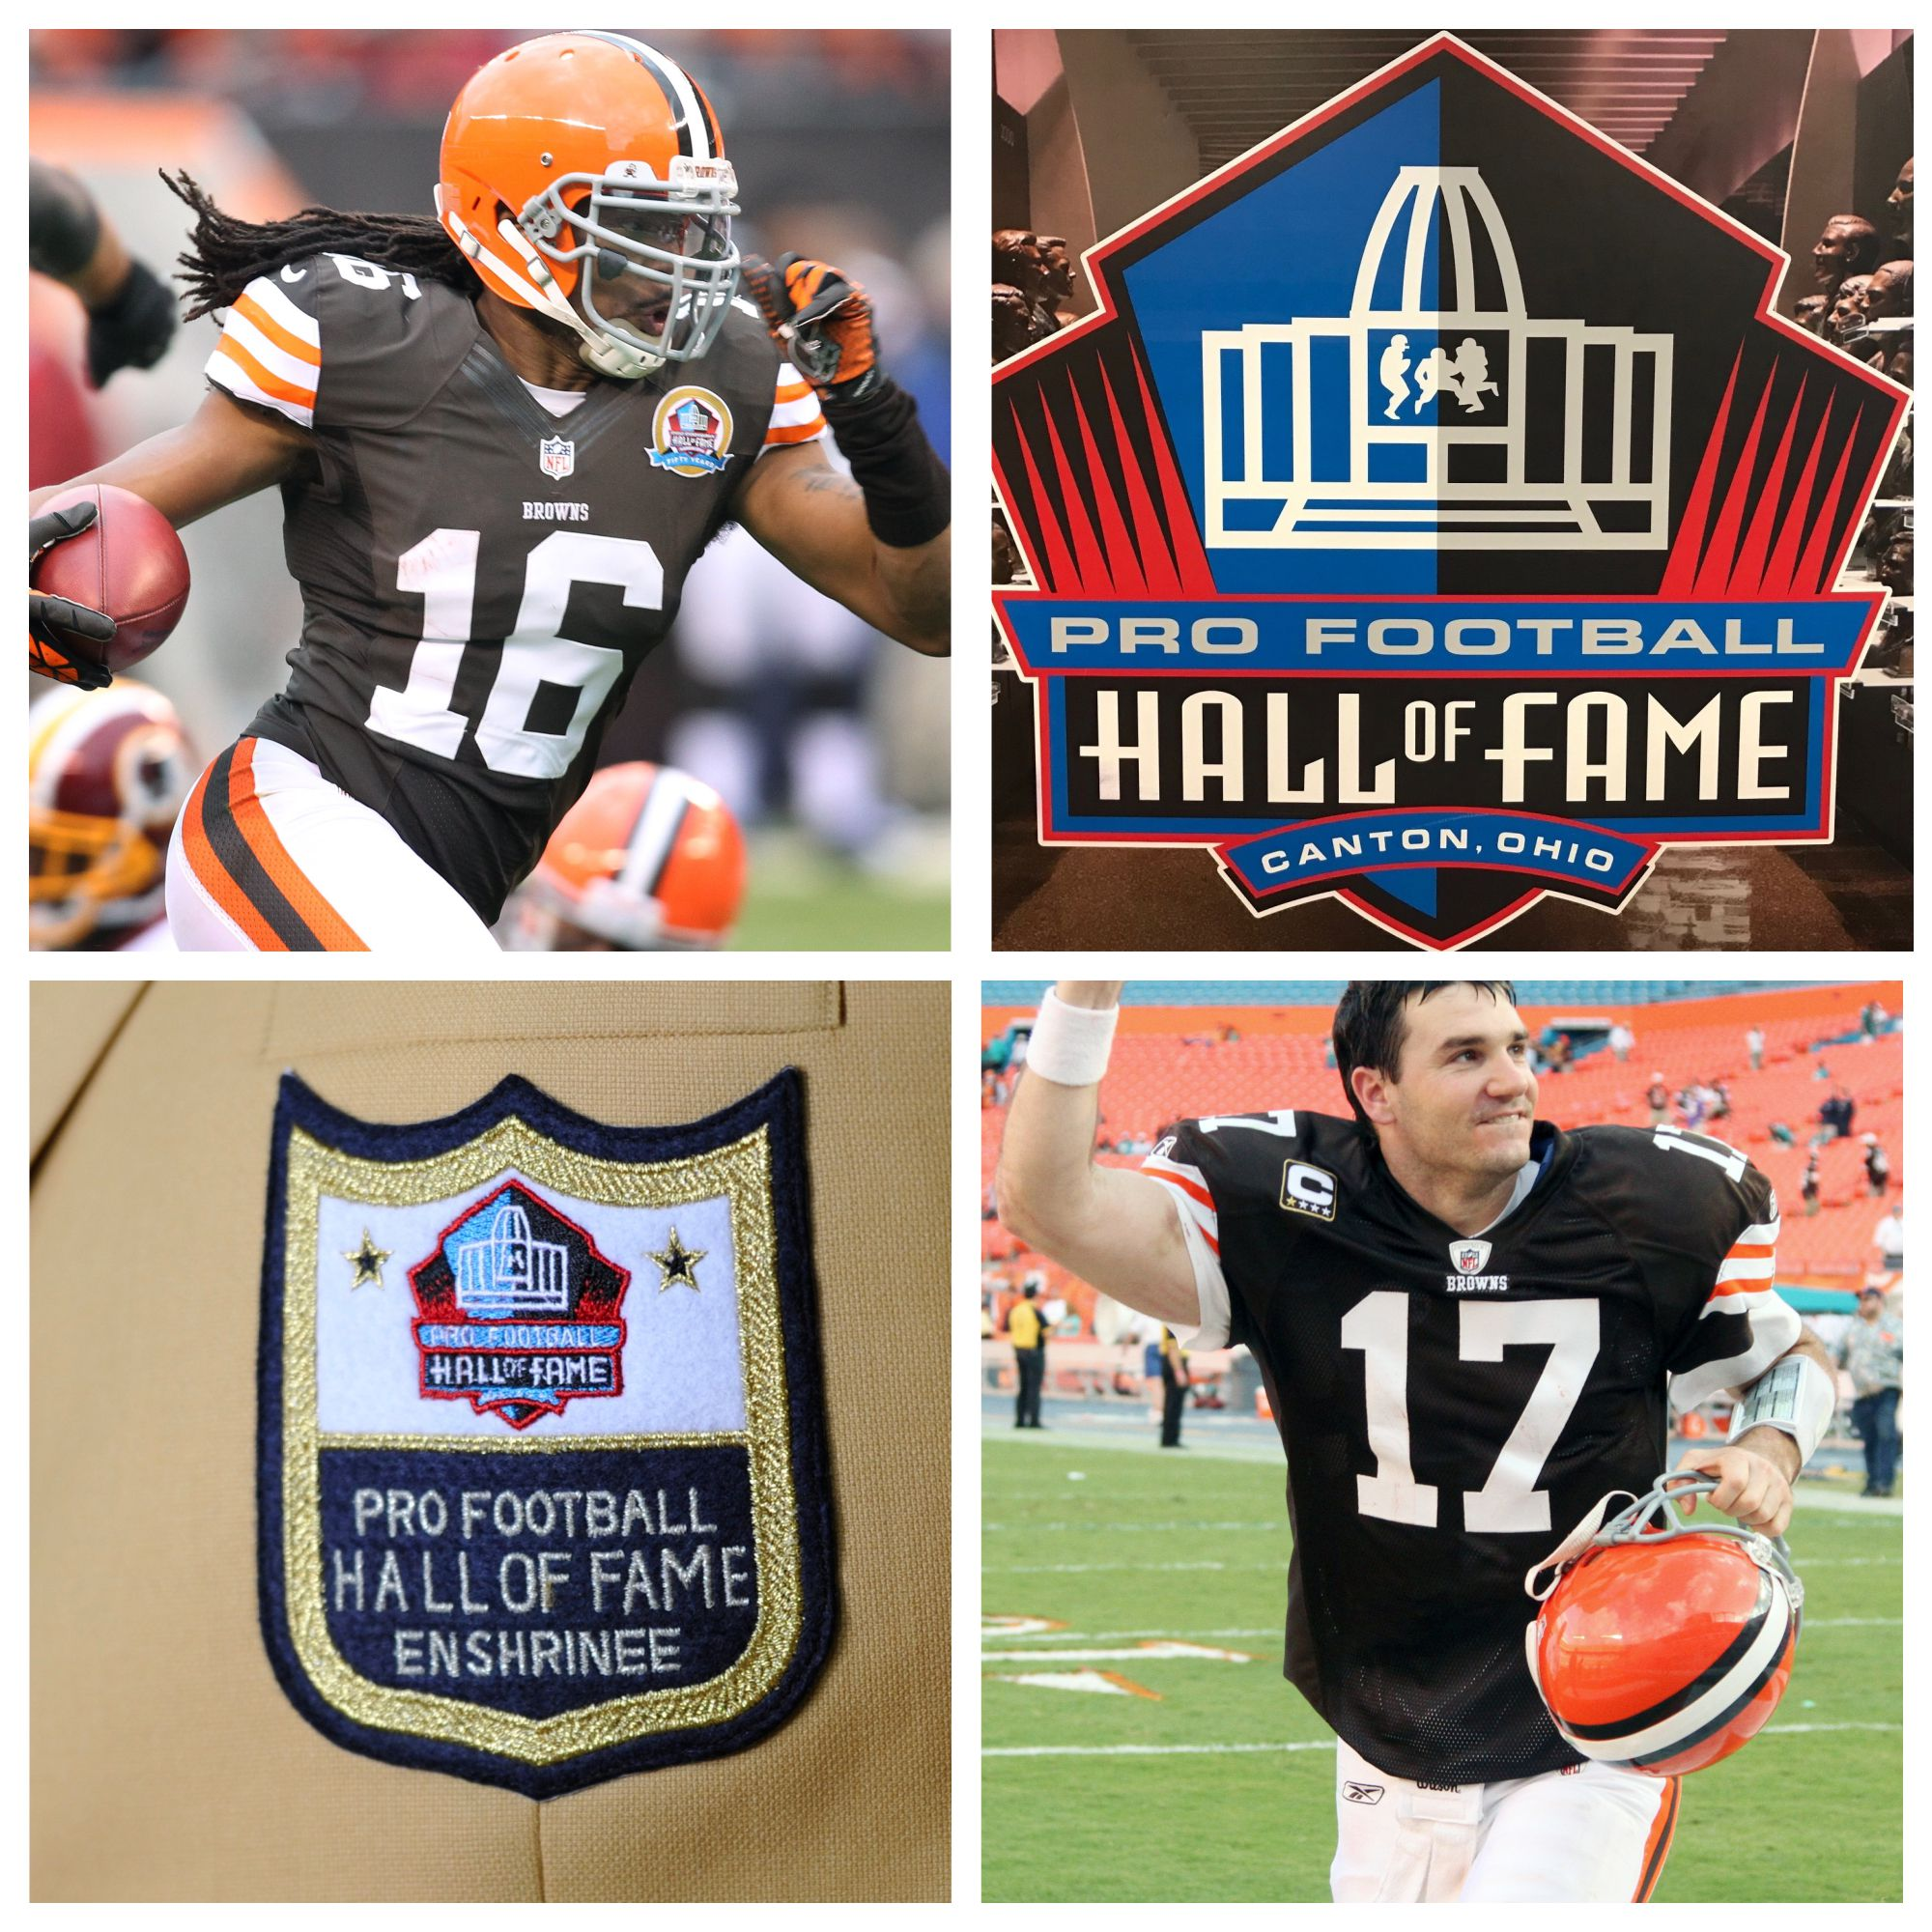 online store d7d98 13533 122 Pro Football Hall of Fame modern-era nominees announced ...